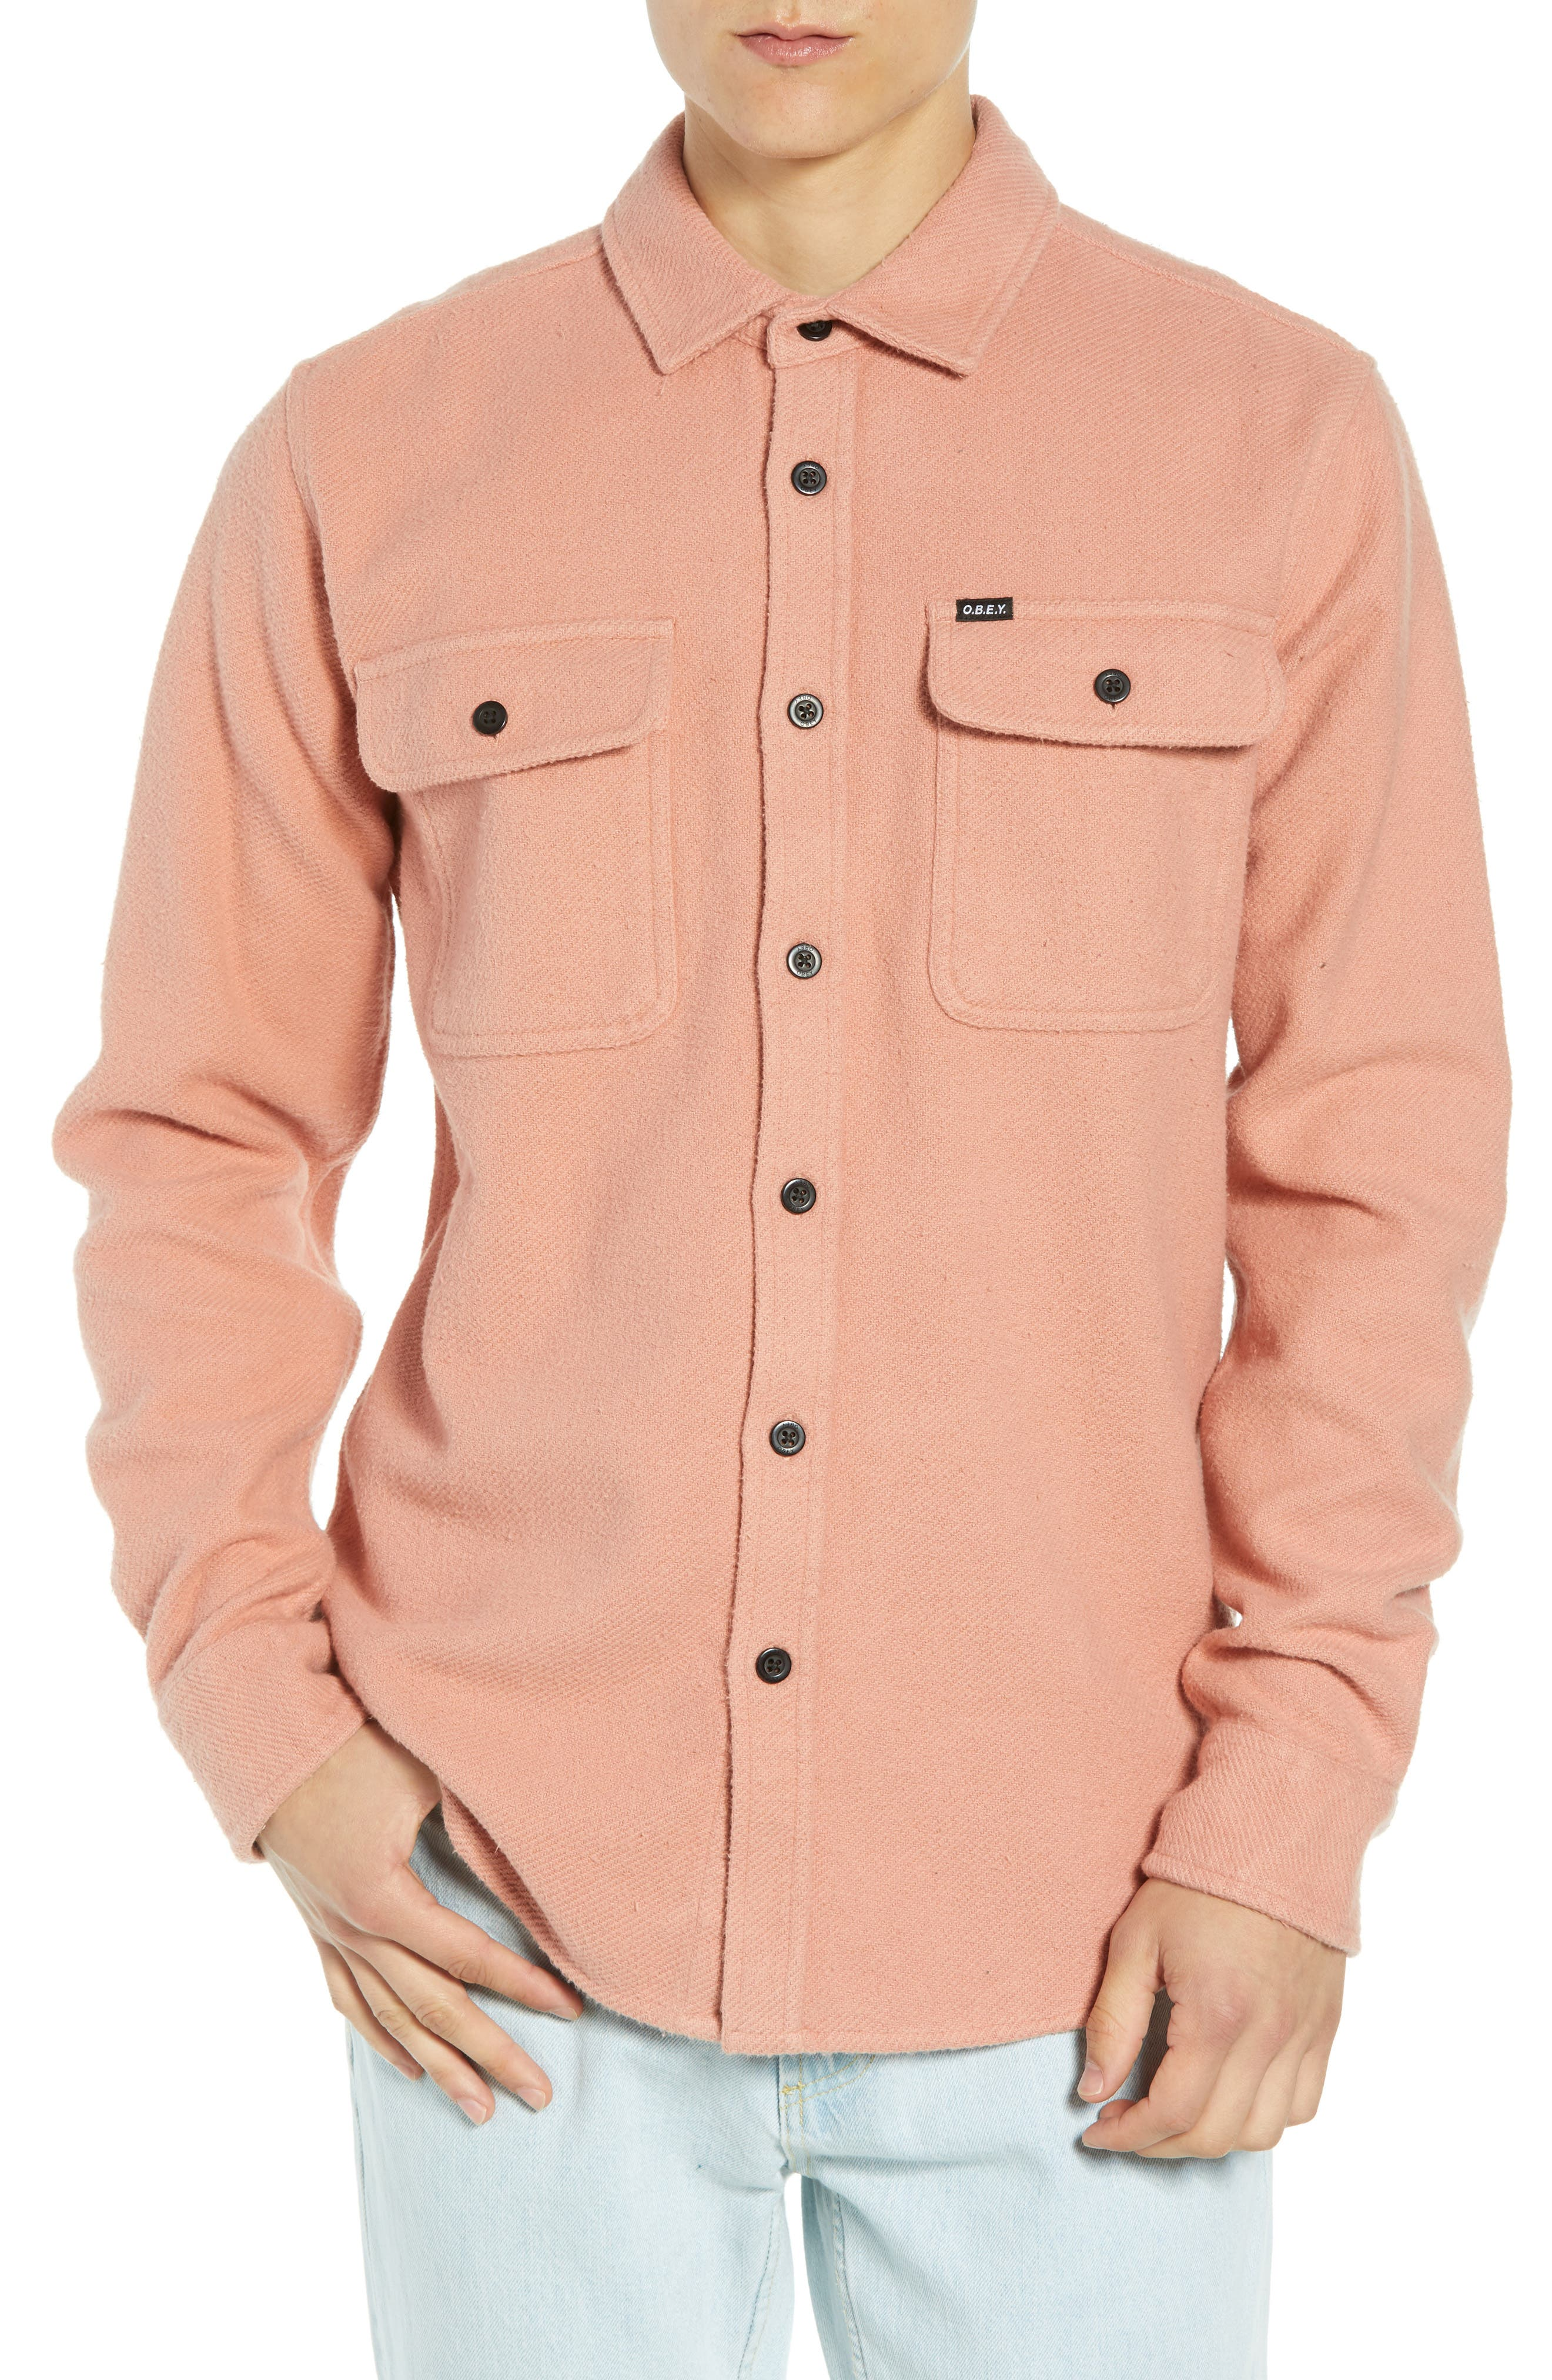 Outpost Flannel Shirt Jacket,                             Main thumbnail 1, color,                             ROSE